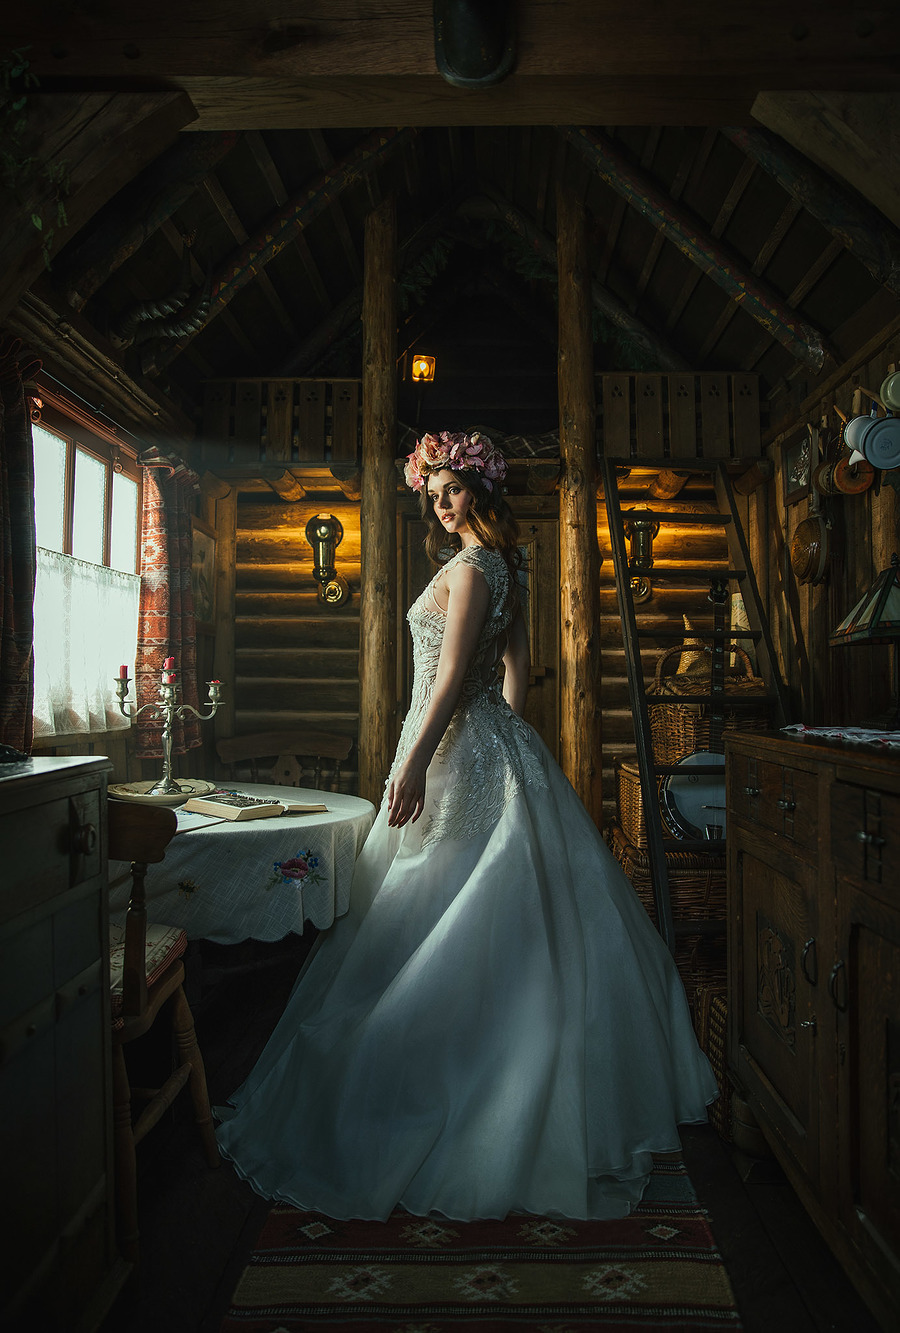 Jodi / Photography by Richard Wakefield, Post processing by Richard Wakefield, Taken at Fantasy / Historical House & Gardens / Uploaded 26th March 2018 @ 11:57 AM